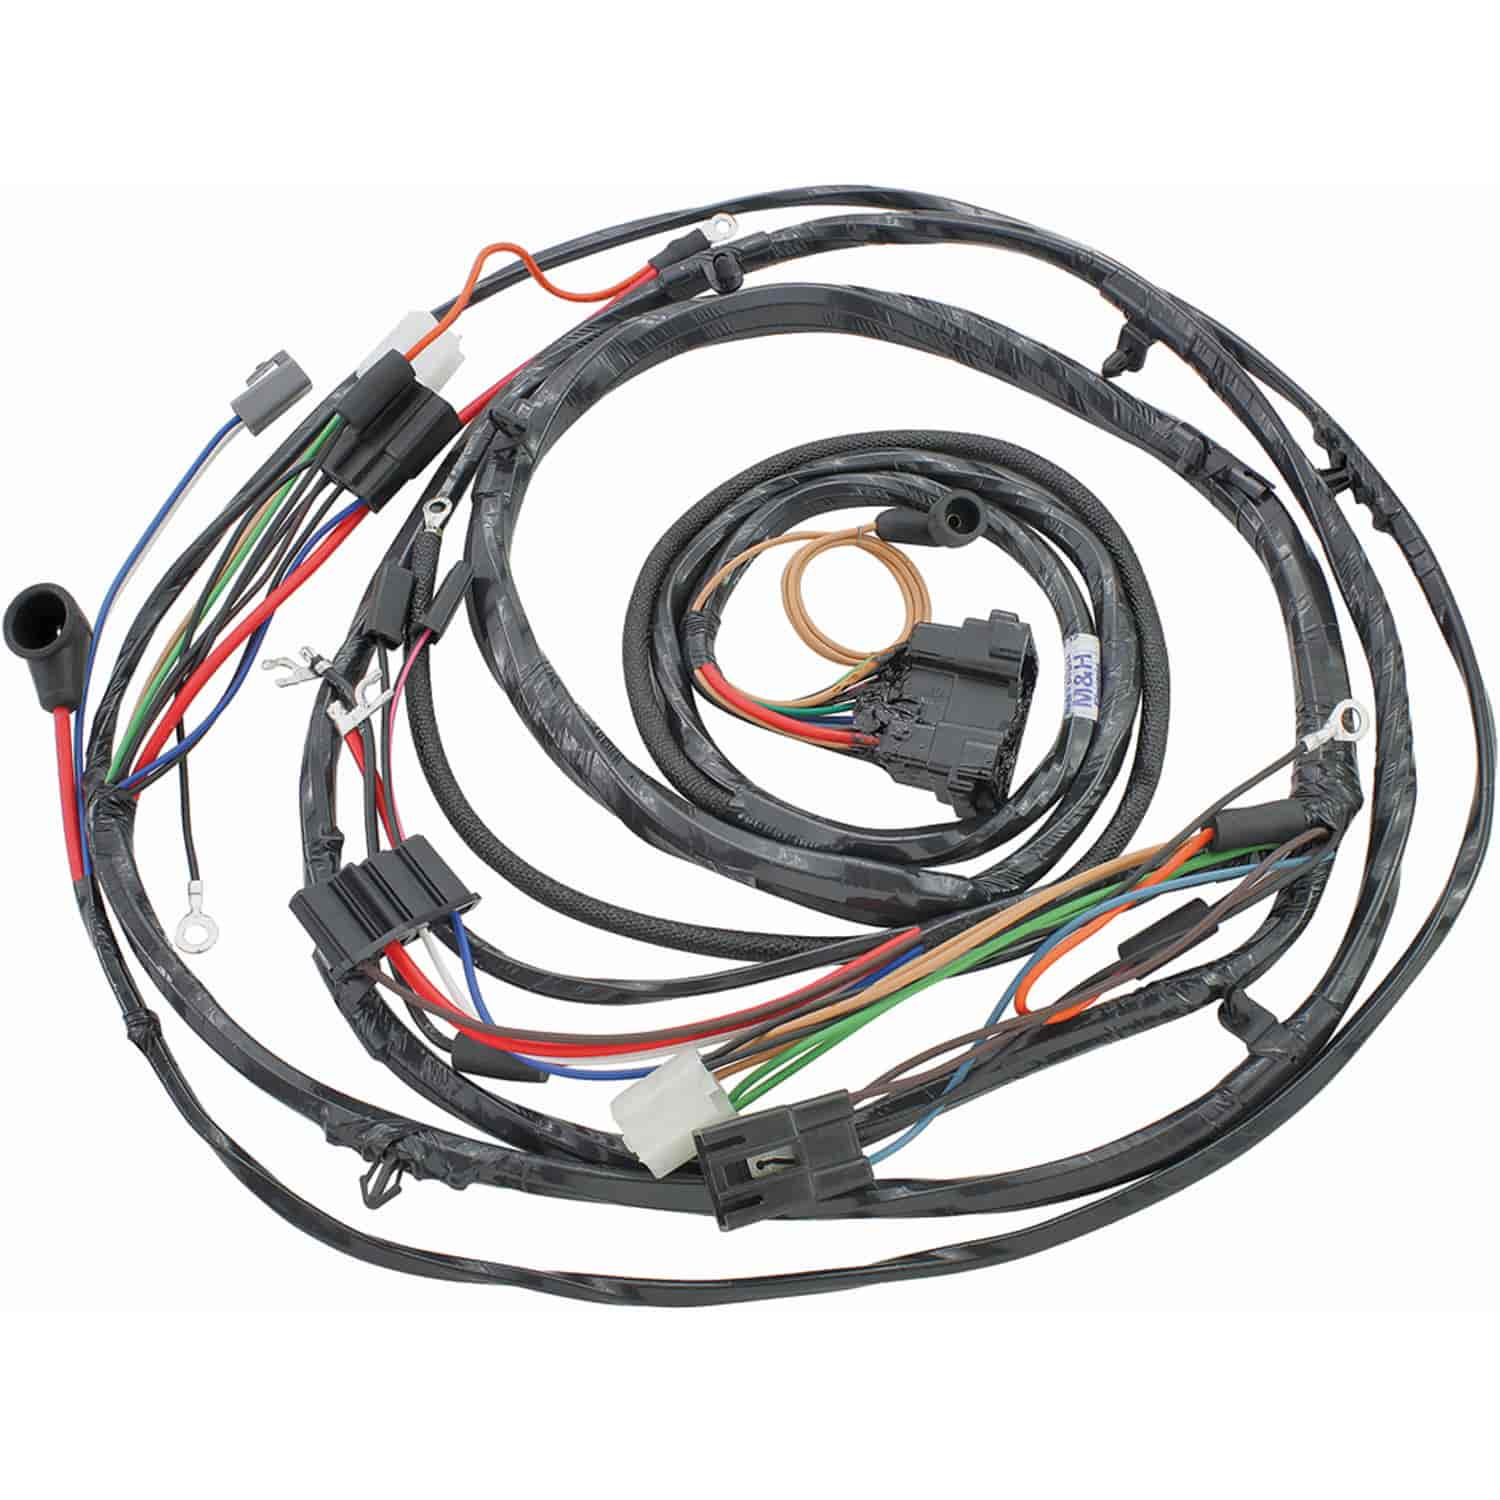 hight resolution of restoparts wiring harness forward lamp 1971 monte carlo gauges restoparts 17470